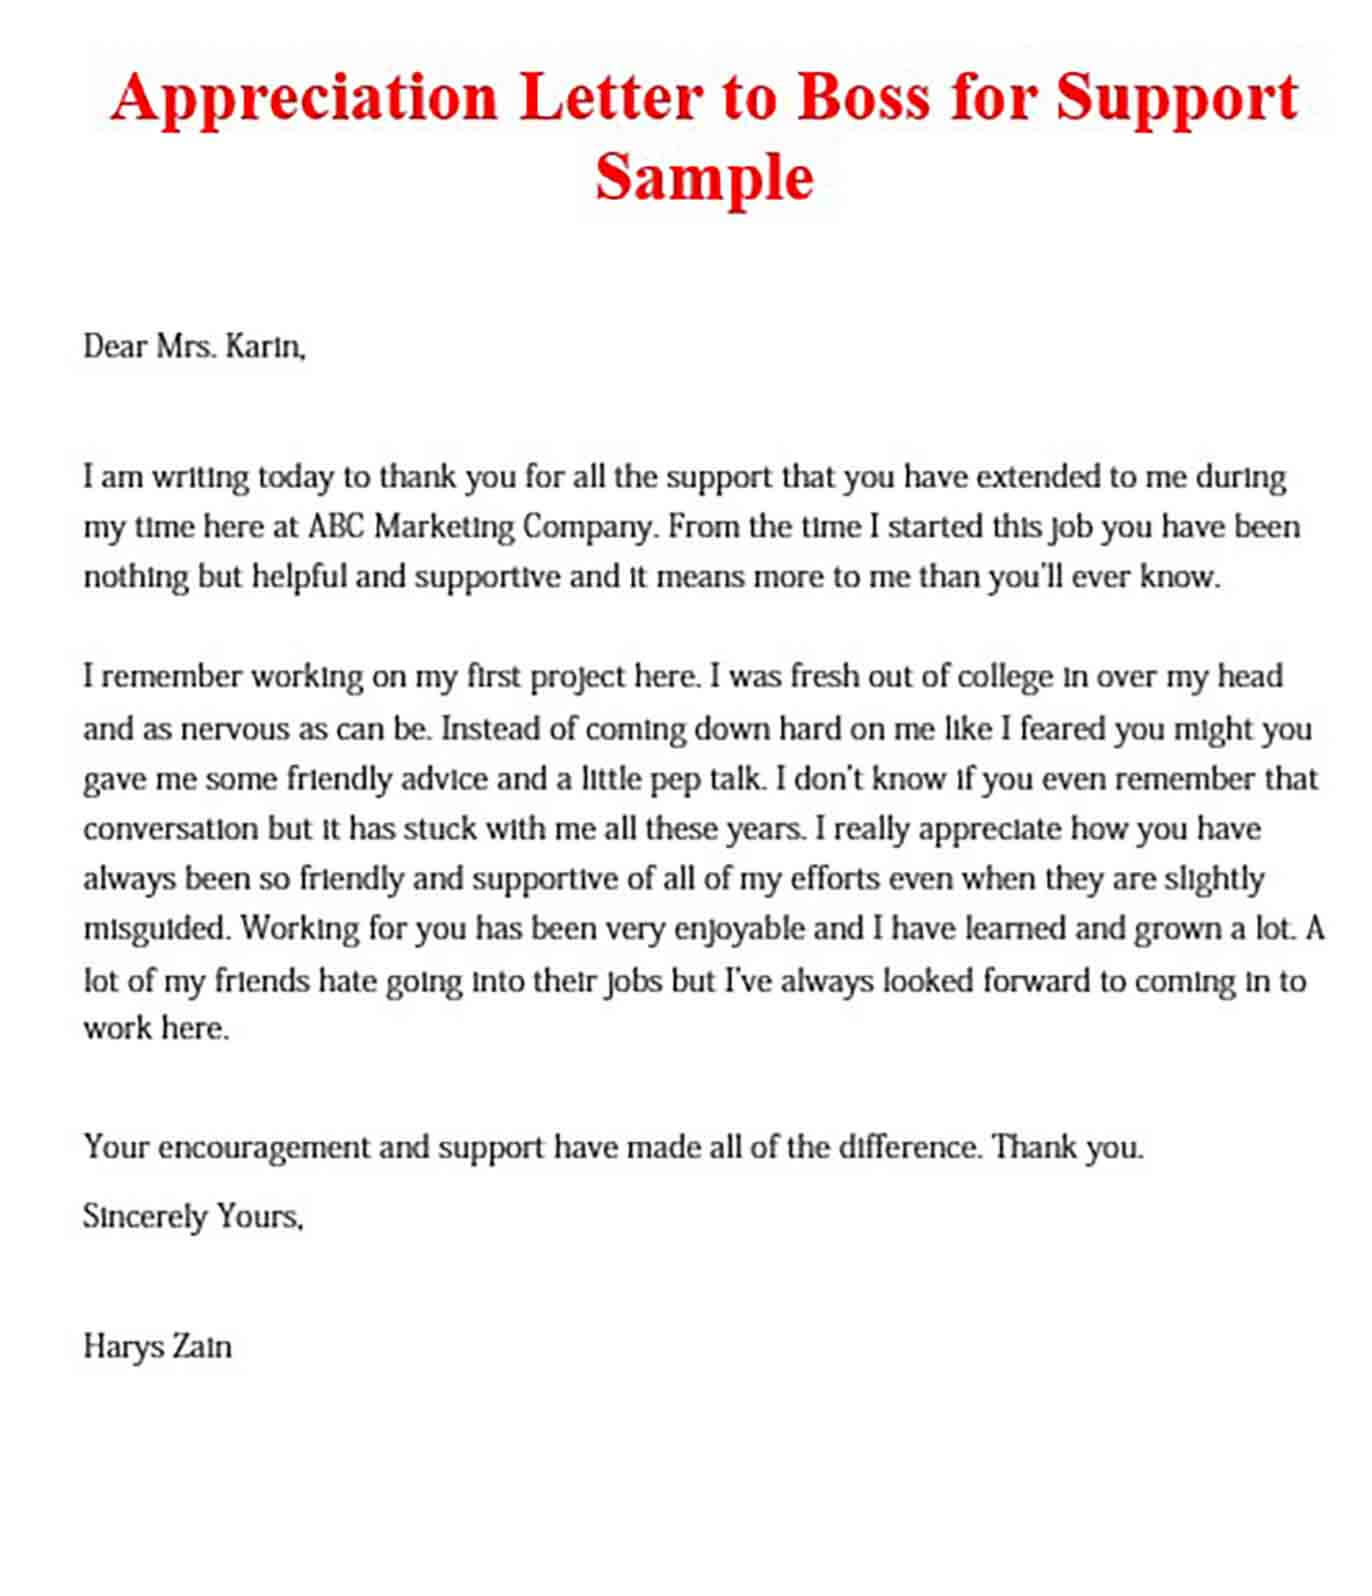 Appreciation Letter to Boss for Support Sample